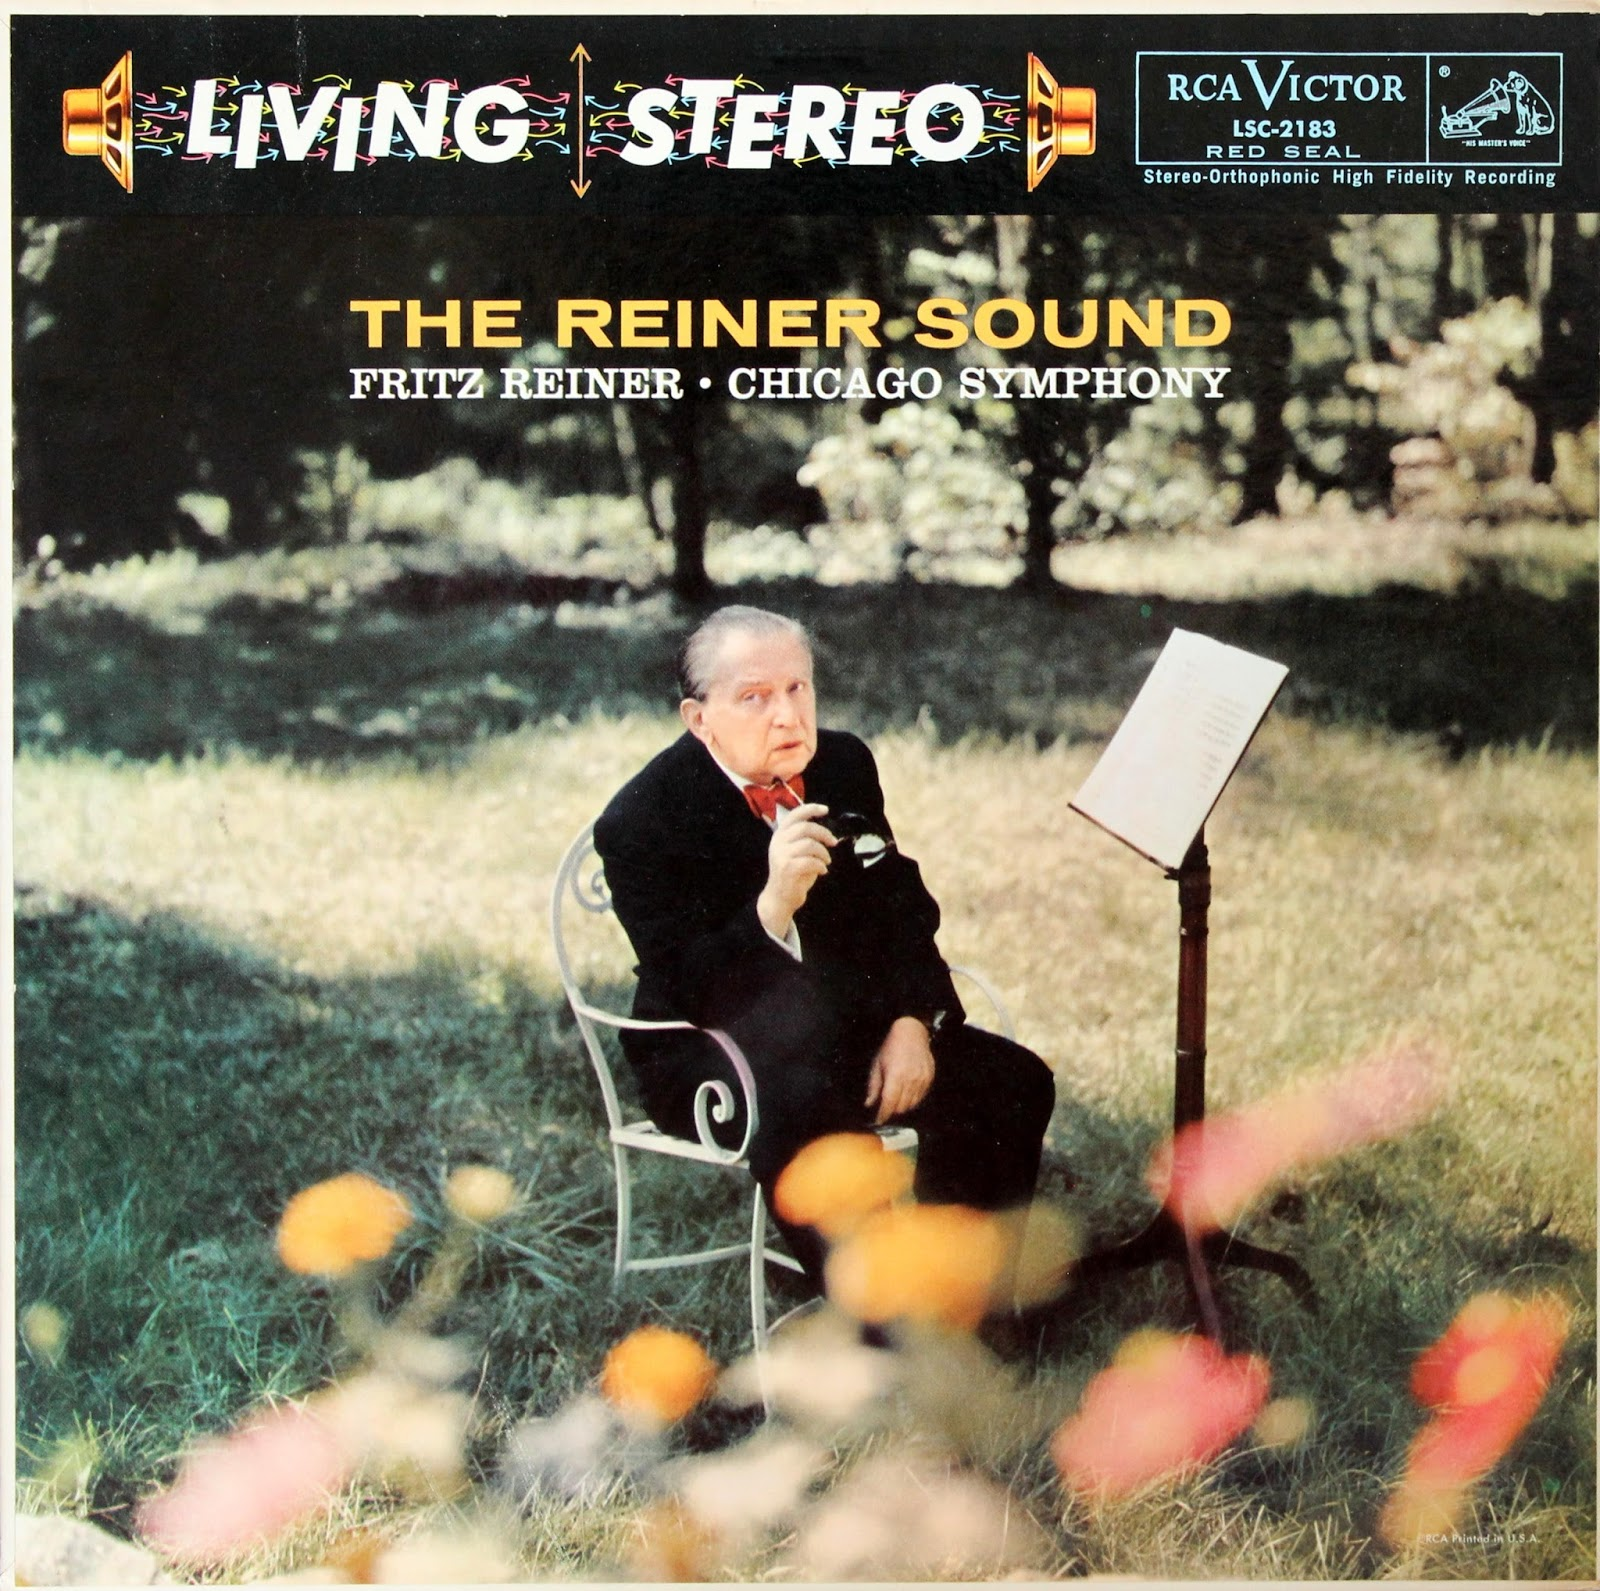 Living Stereo: The Reiner Sound   Front:  Fritz Reiner  Chicago Symphony  Back:  The Reiner Sound is one of the most sought-after recordings in the entire Living Stereo series. Coveted by collectors for its magnificent blend of orchestral virtuosity and sonic brilliance, this Living Stereo classis features the unparalleled artistry of the Chicago Symphoany Orchestra under legendary conductor Fritz Reiner. Also featured is the superb artistry of piano virtuoso Byron Janis.  Maurice Ravel (1875- 1937)  Rapsodie espagnole 16:55  Pavan for a Dead Princess 6:28  Franz Liszt (1811-1886)  Totentanz 15:25  Byron Janis, piano  Carl Maria von Weber (1786-1826)  Orch. Hector Berlioz (1803-1869)  Invitation to the Dance 8:51  Sergei Rachmaninoff (1873-1943)  Isle of the Dead, Op.29 20:00  Chicago Symphony Orchestra  Fritz Reiner, conductor  (Recorded in 1956, 1957, 1959)  Produced by Richard Mohr  Recording Engineer: Lewis Lyton  Total playing time : 68:16  1993, 1958, 1961, BMG Musi